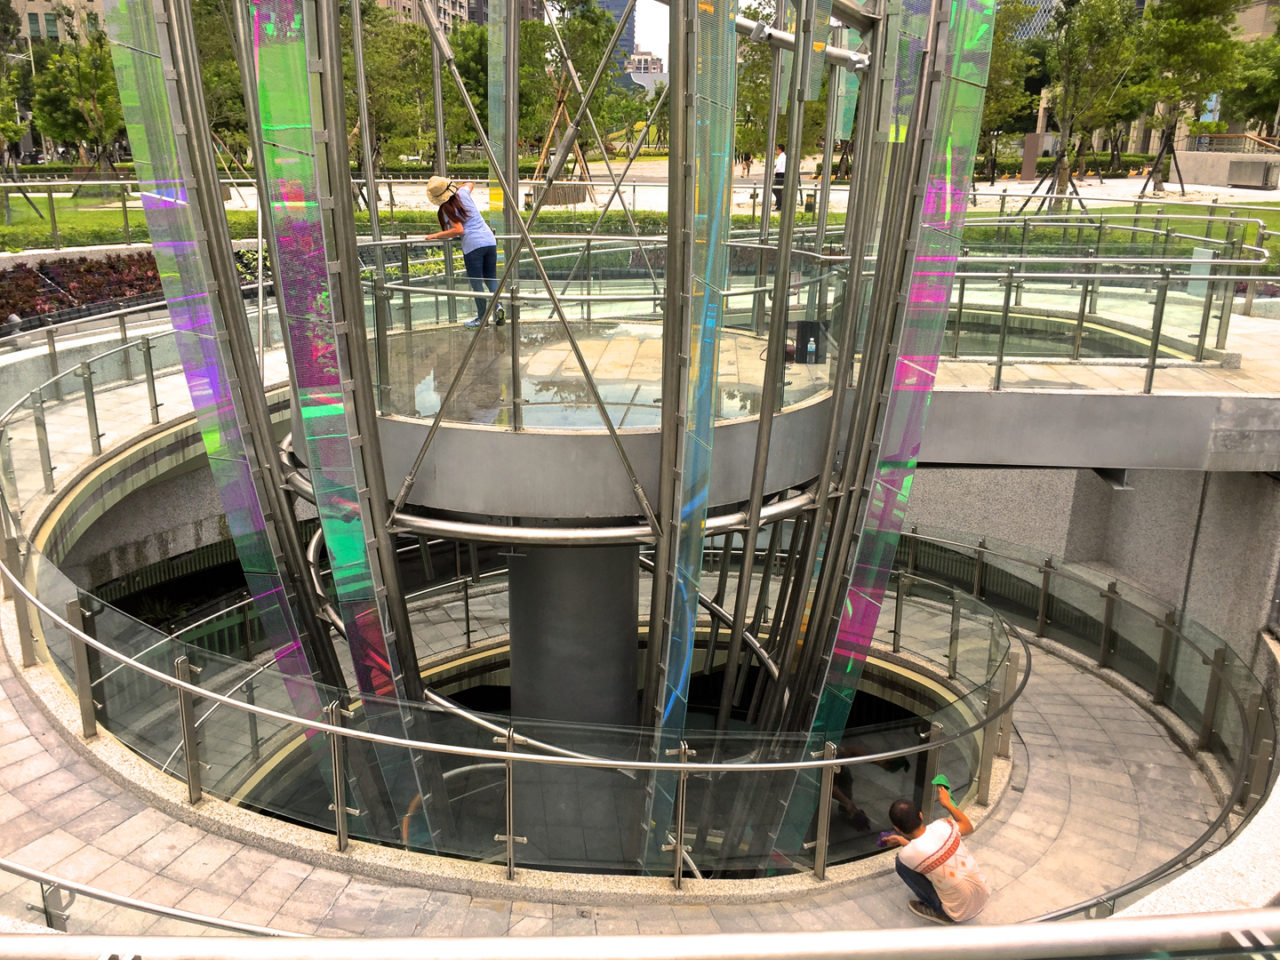 Taichung, Taiwan Civic Center monumental sculpture: Stainless Steel and Laminated Dichroic Glass. Crocus emerges from two levels of parking below the parks, surrounds a viewing platform, and unfolds upward like an enormous blossom. / image 7